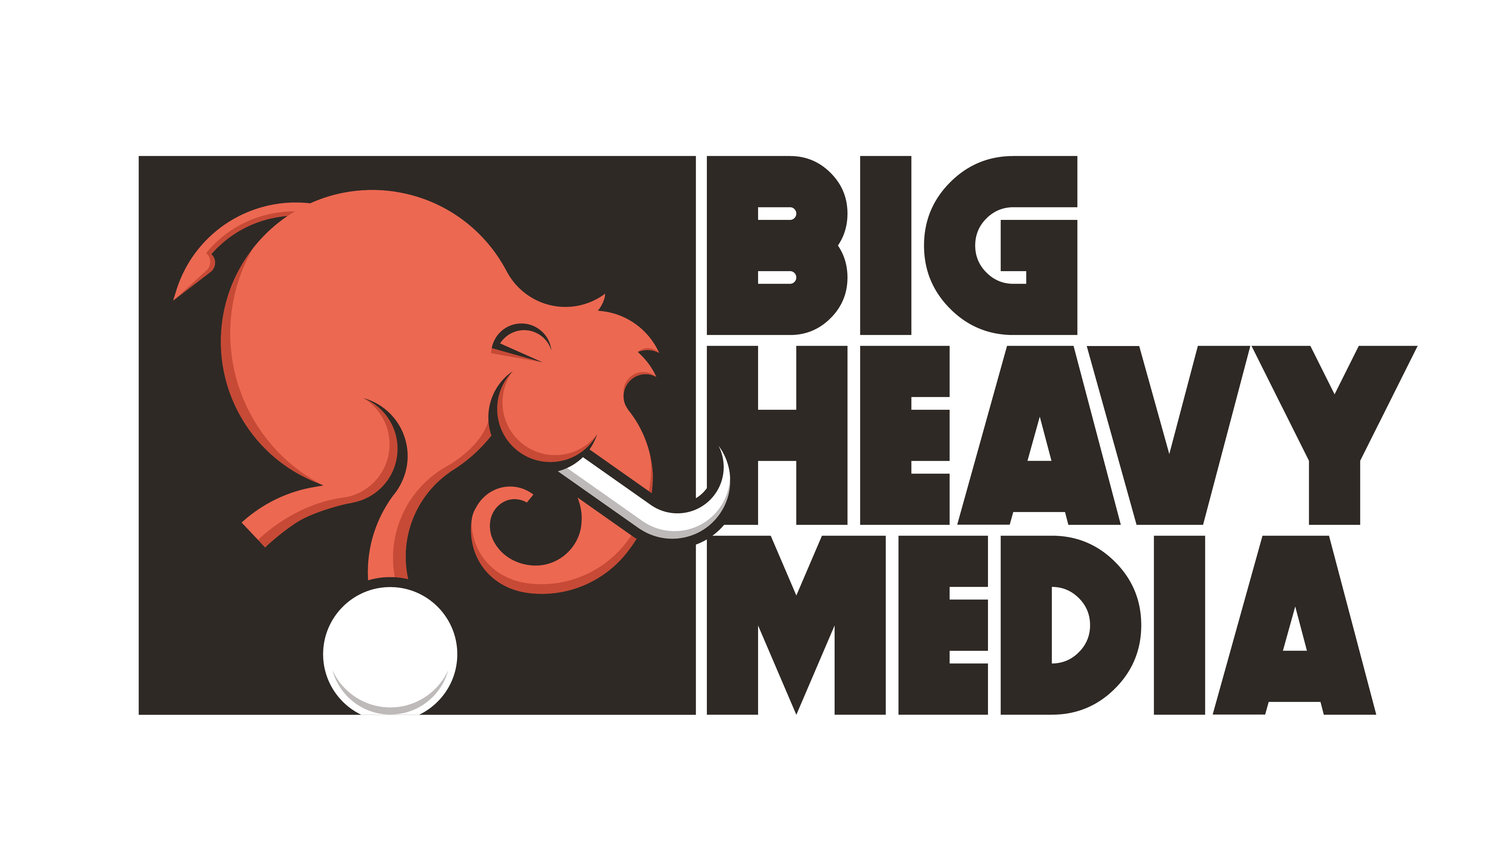 Big Heavy Media LLC